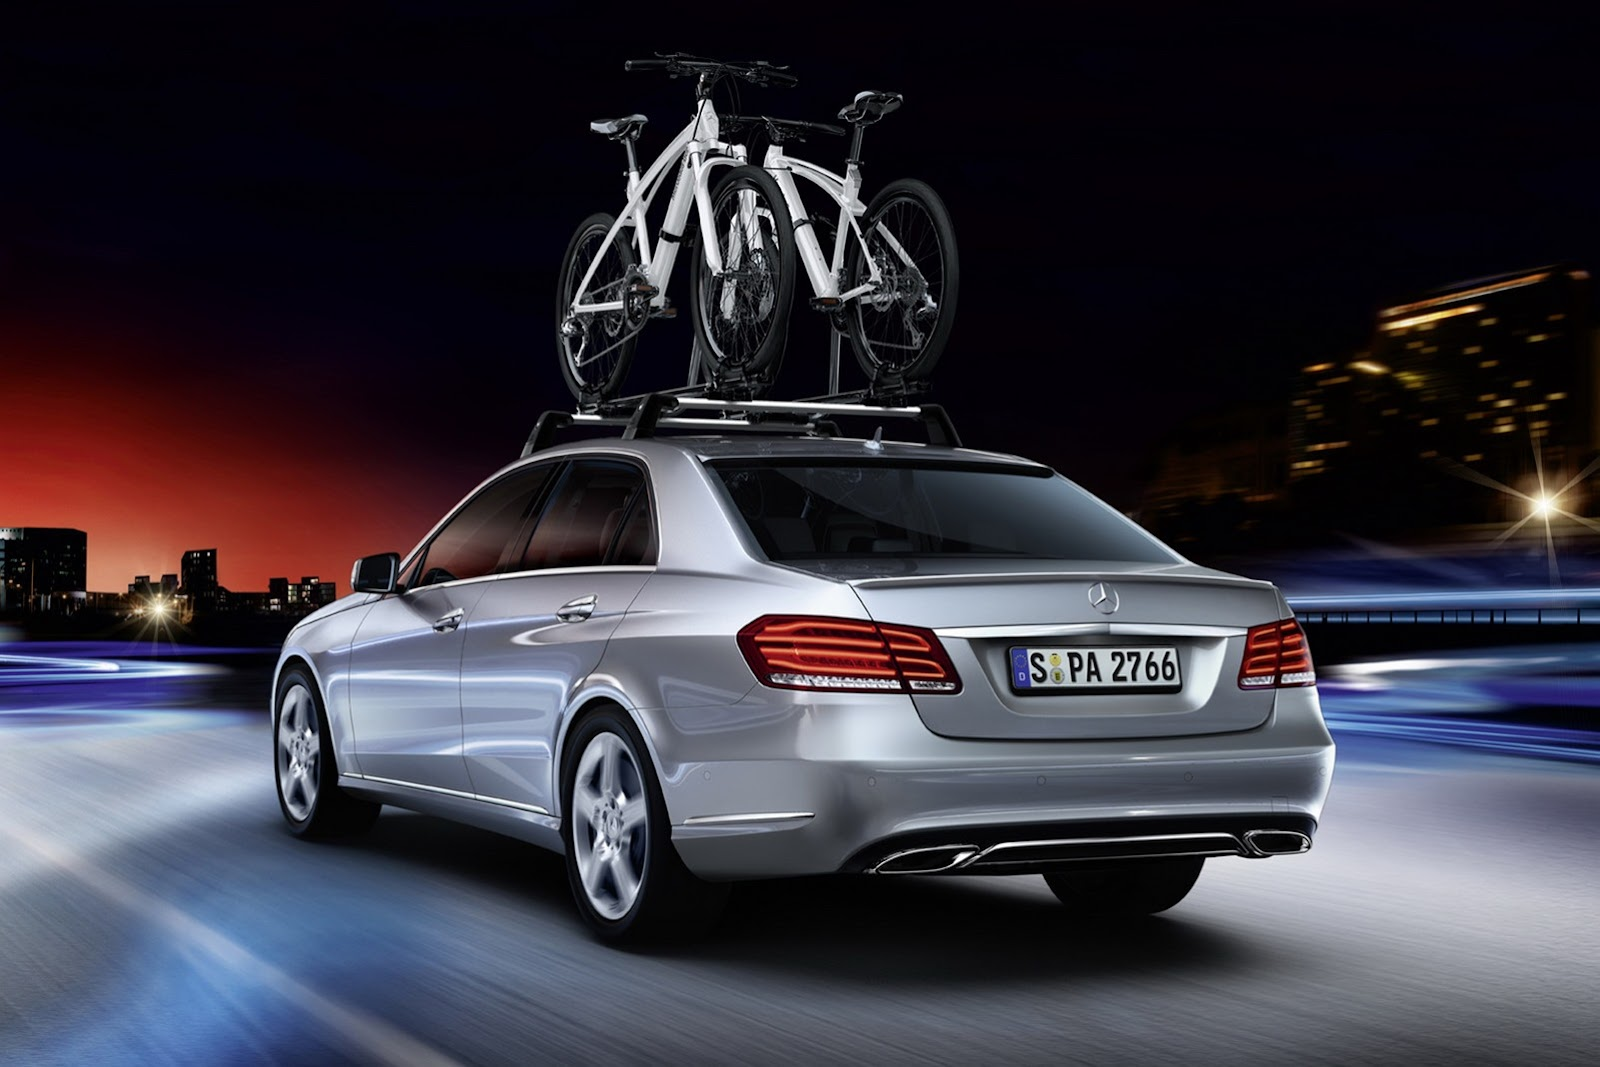 Mercedes benz e class now available with illuminated star for Mercedes benz e class accessories